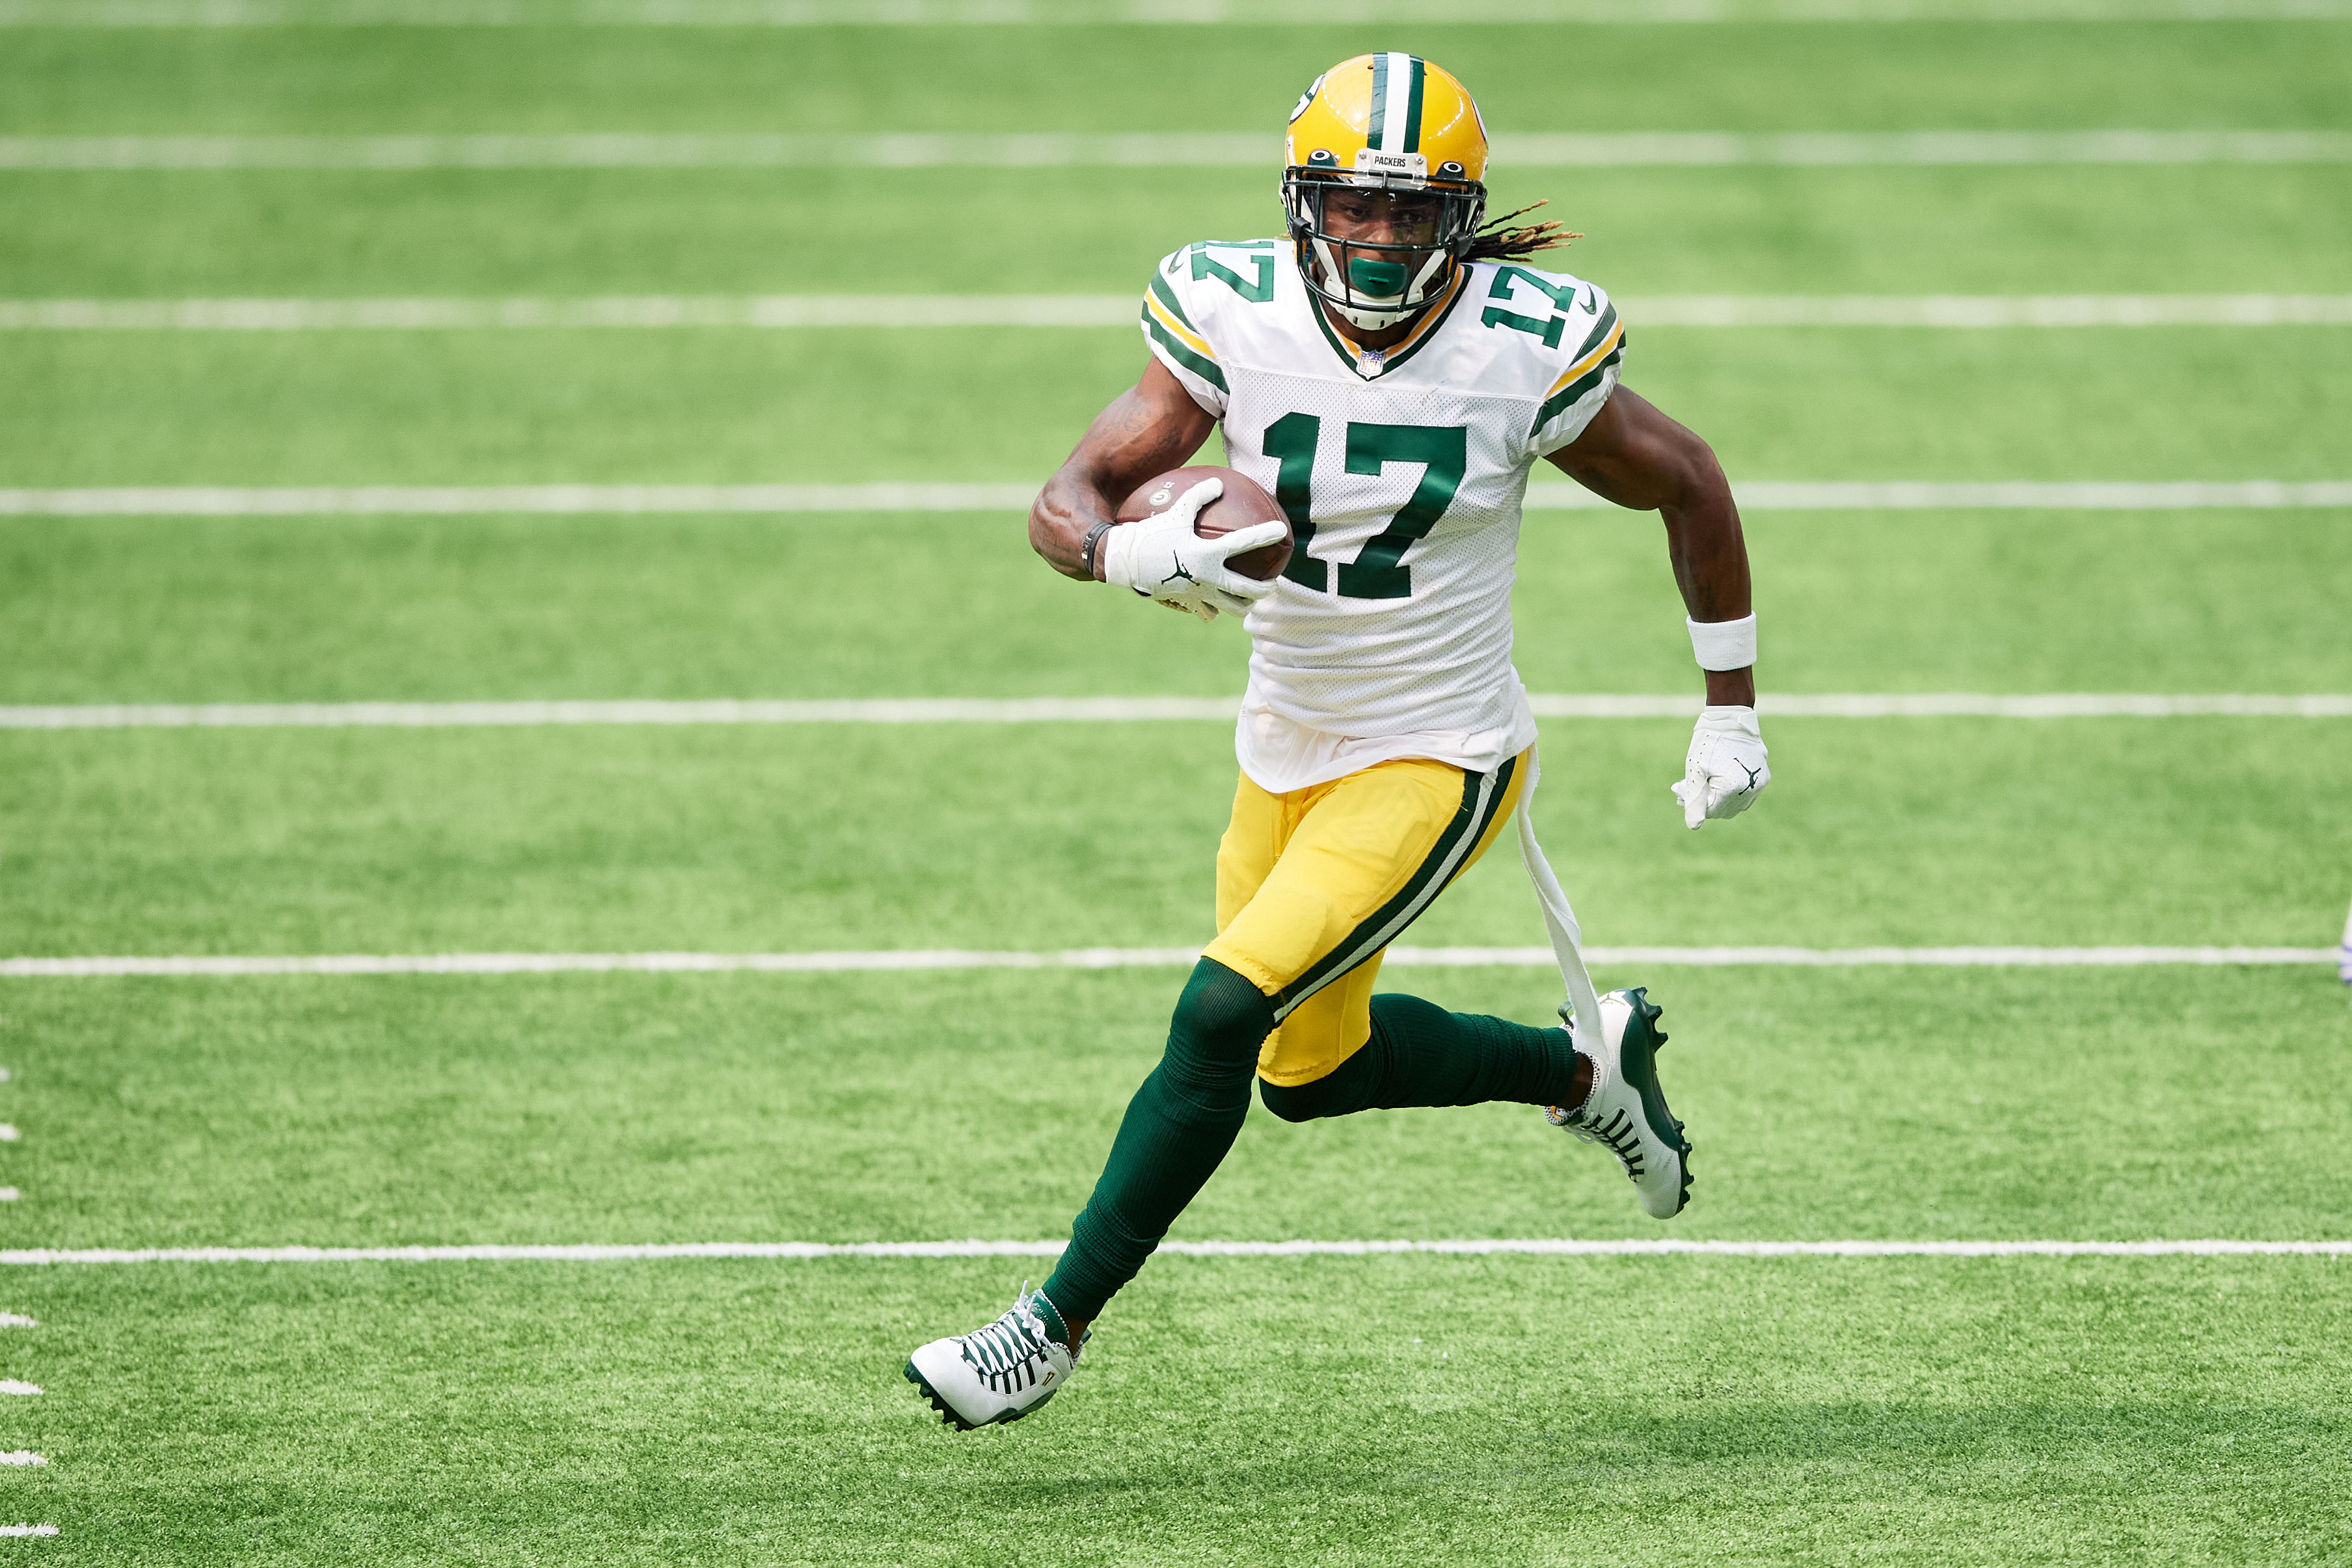 Davante Adams of the Green Bay Packers carries the ball against the Minnesota Vikings during the game at U.S. Bank Stadium on September 13, 2020 in Minneapolis, Minnesota. The Packers defeated the Vikings 43-34.